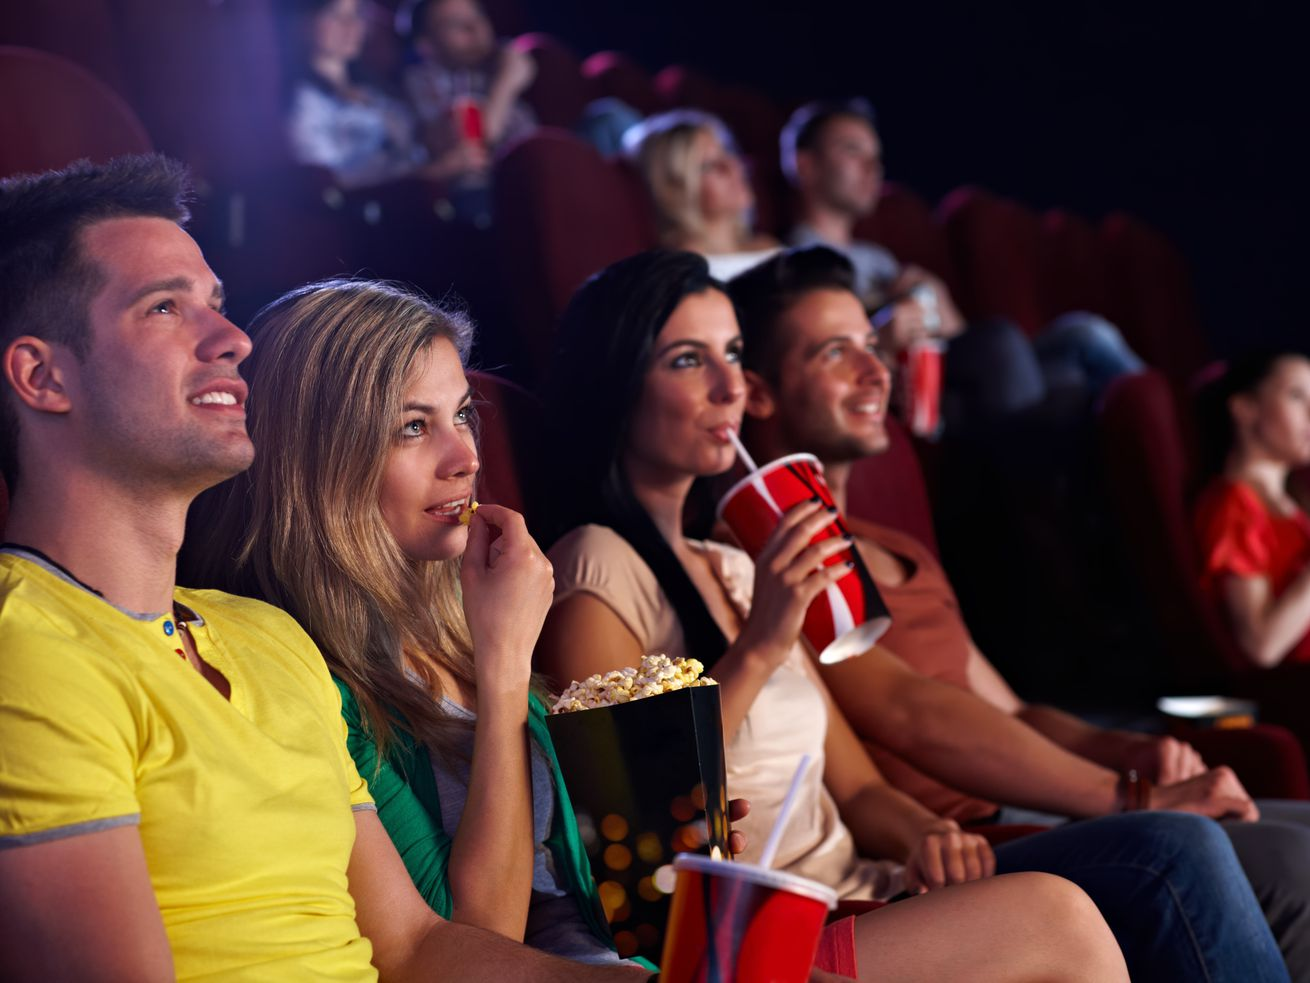 Looking for a light workout? Go to the movie theater, new study suggests